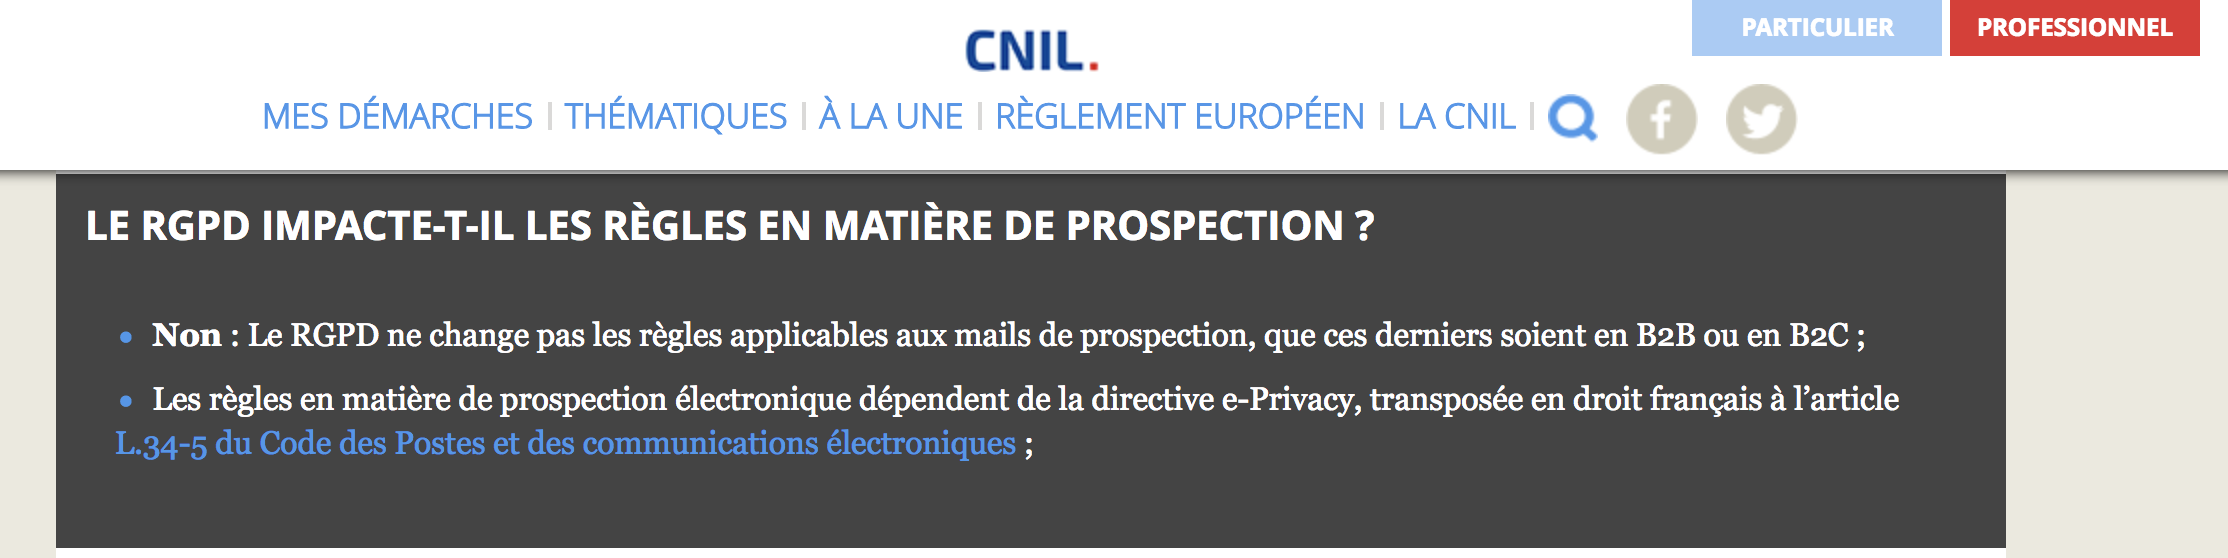 Landing Page of the CNIL